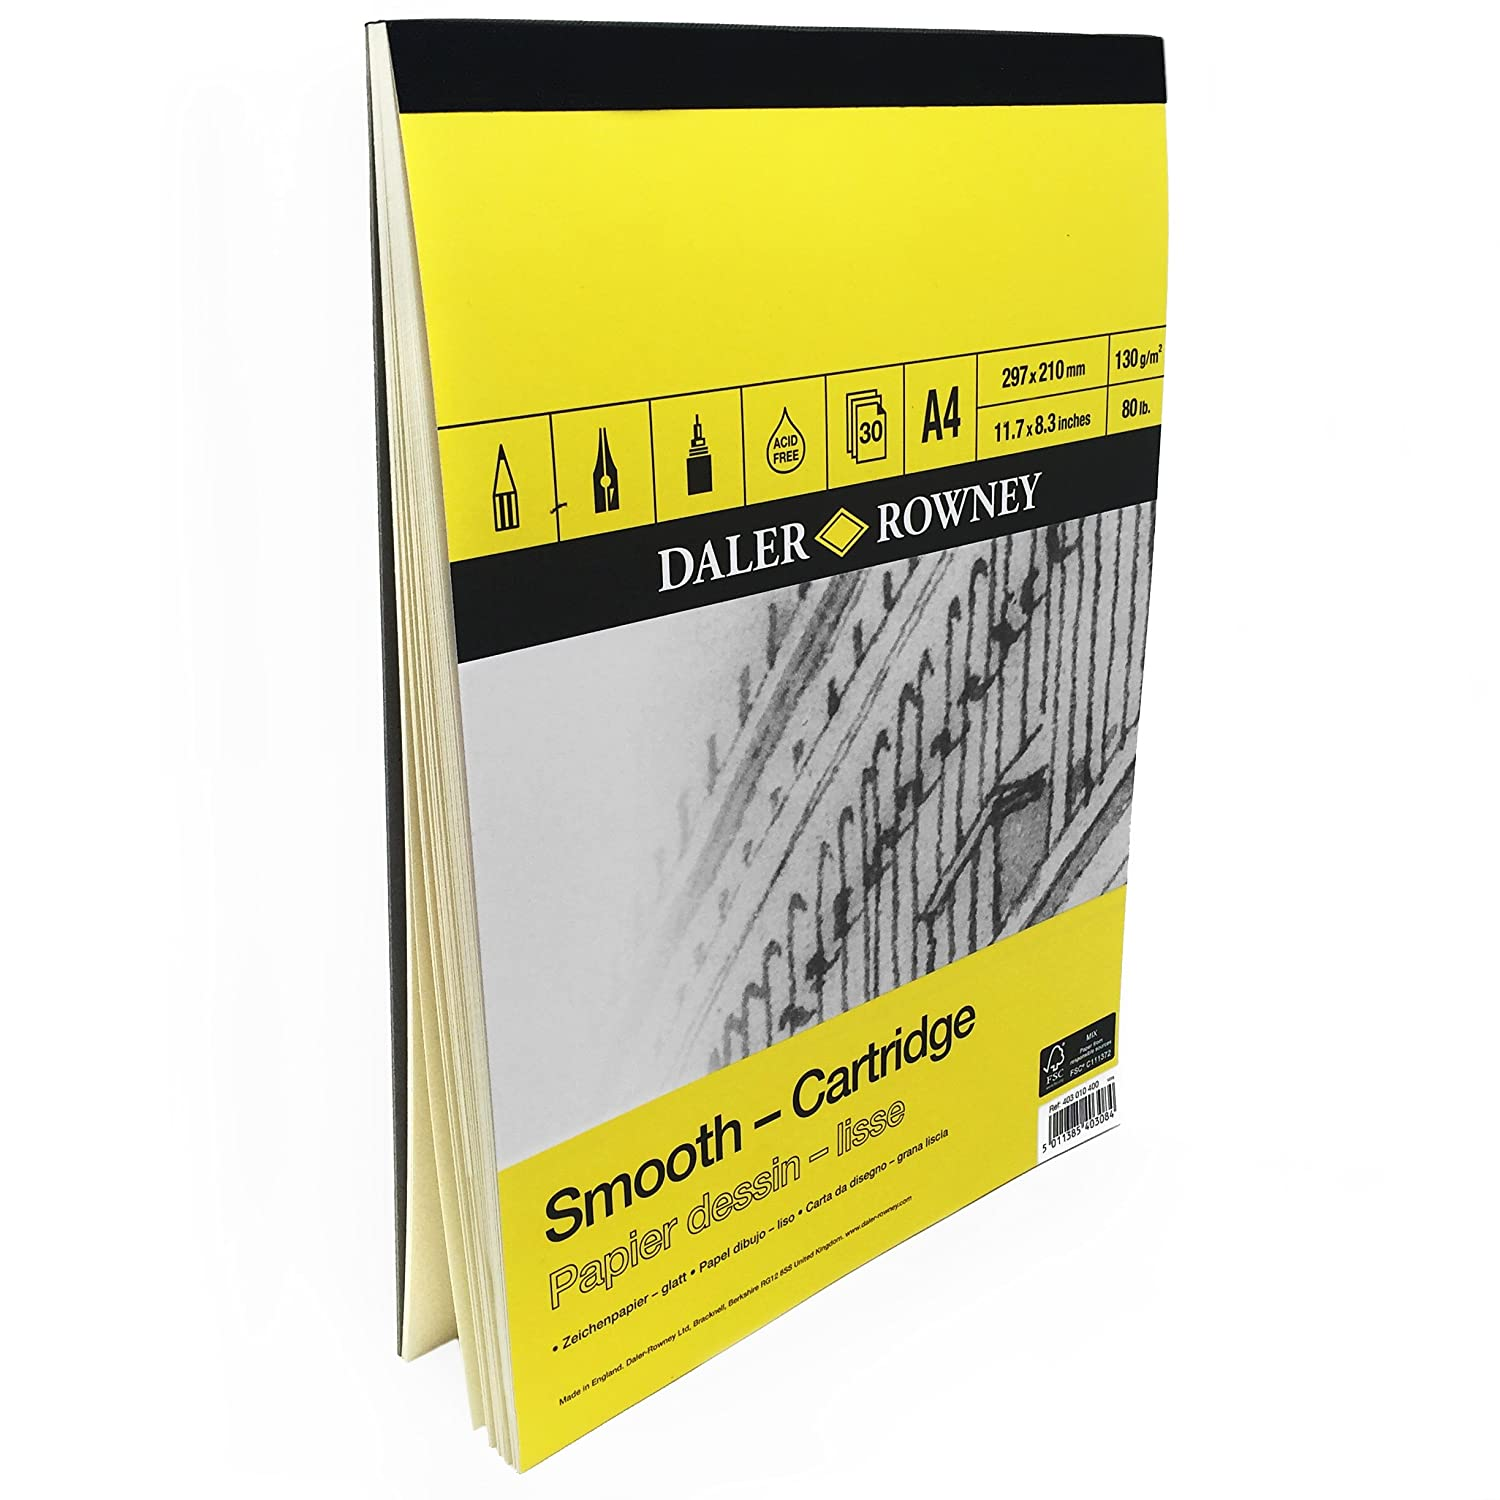 Daler Rowney - Smooth Cartridge Sketchbook - 130gsm - 30 Pages - A4 Portrait - Made in England 403 010 400